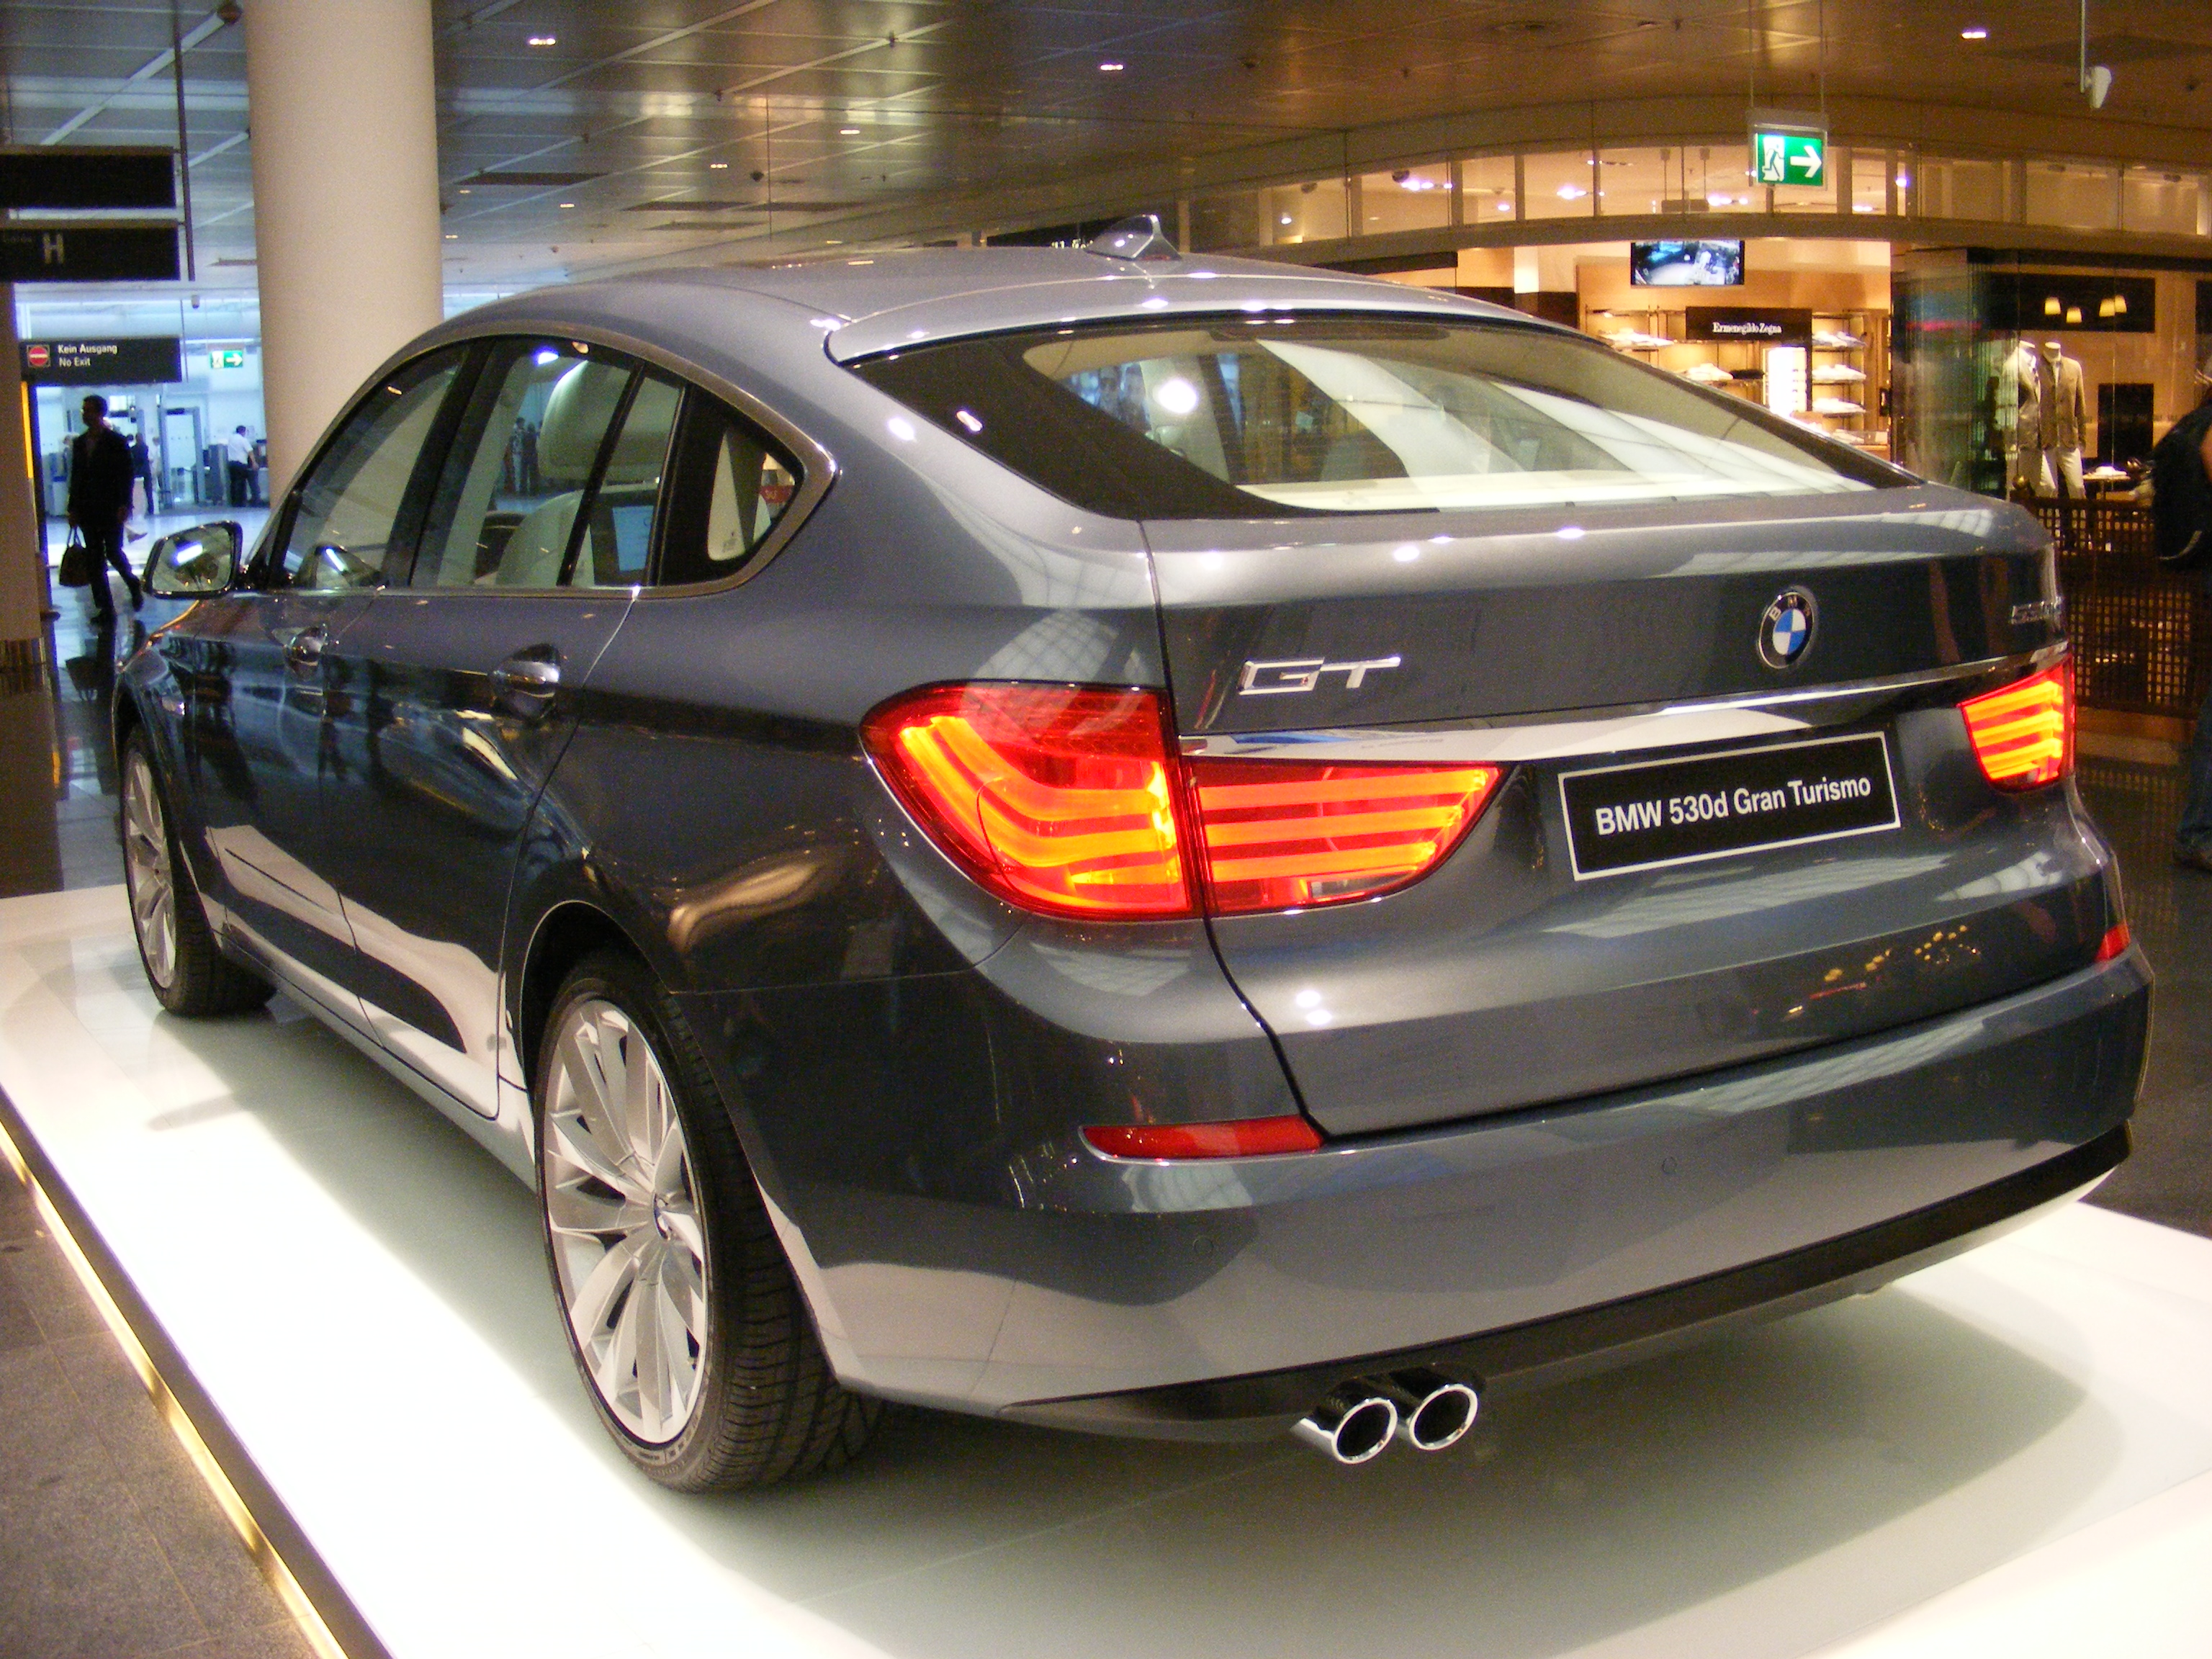 File:BMW 530d Gran Turismo (2009) - rear.jpg